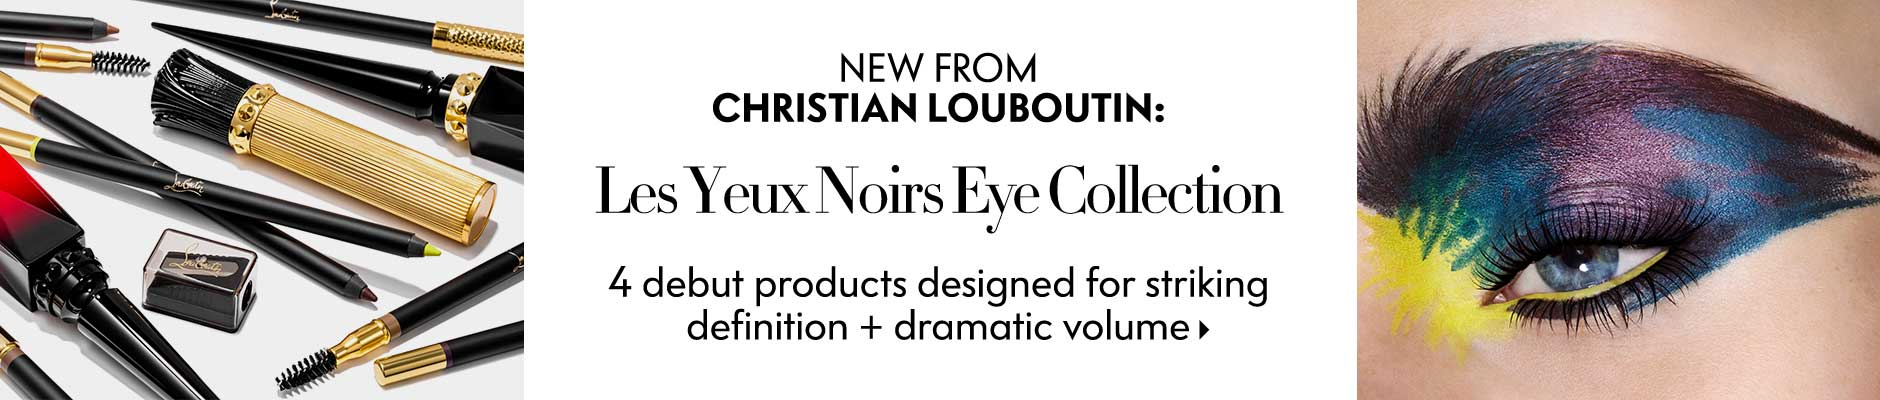 New from Christian Louboutin: Les Yeux Noirs eye collection - 4 debut products designed for striking definition + dramatic volume